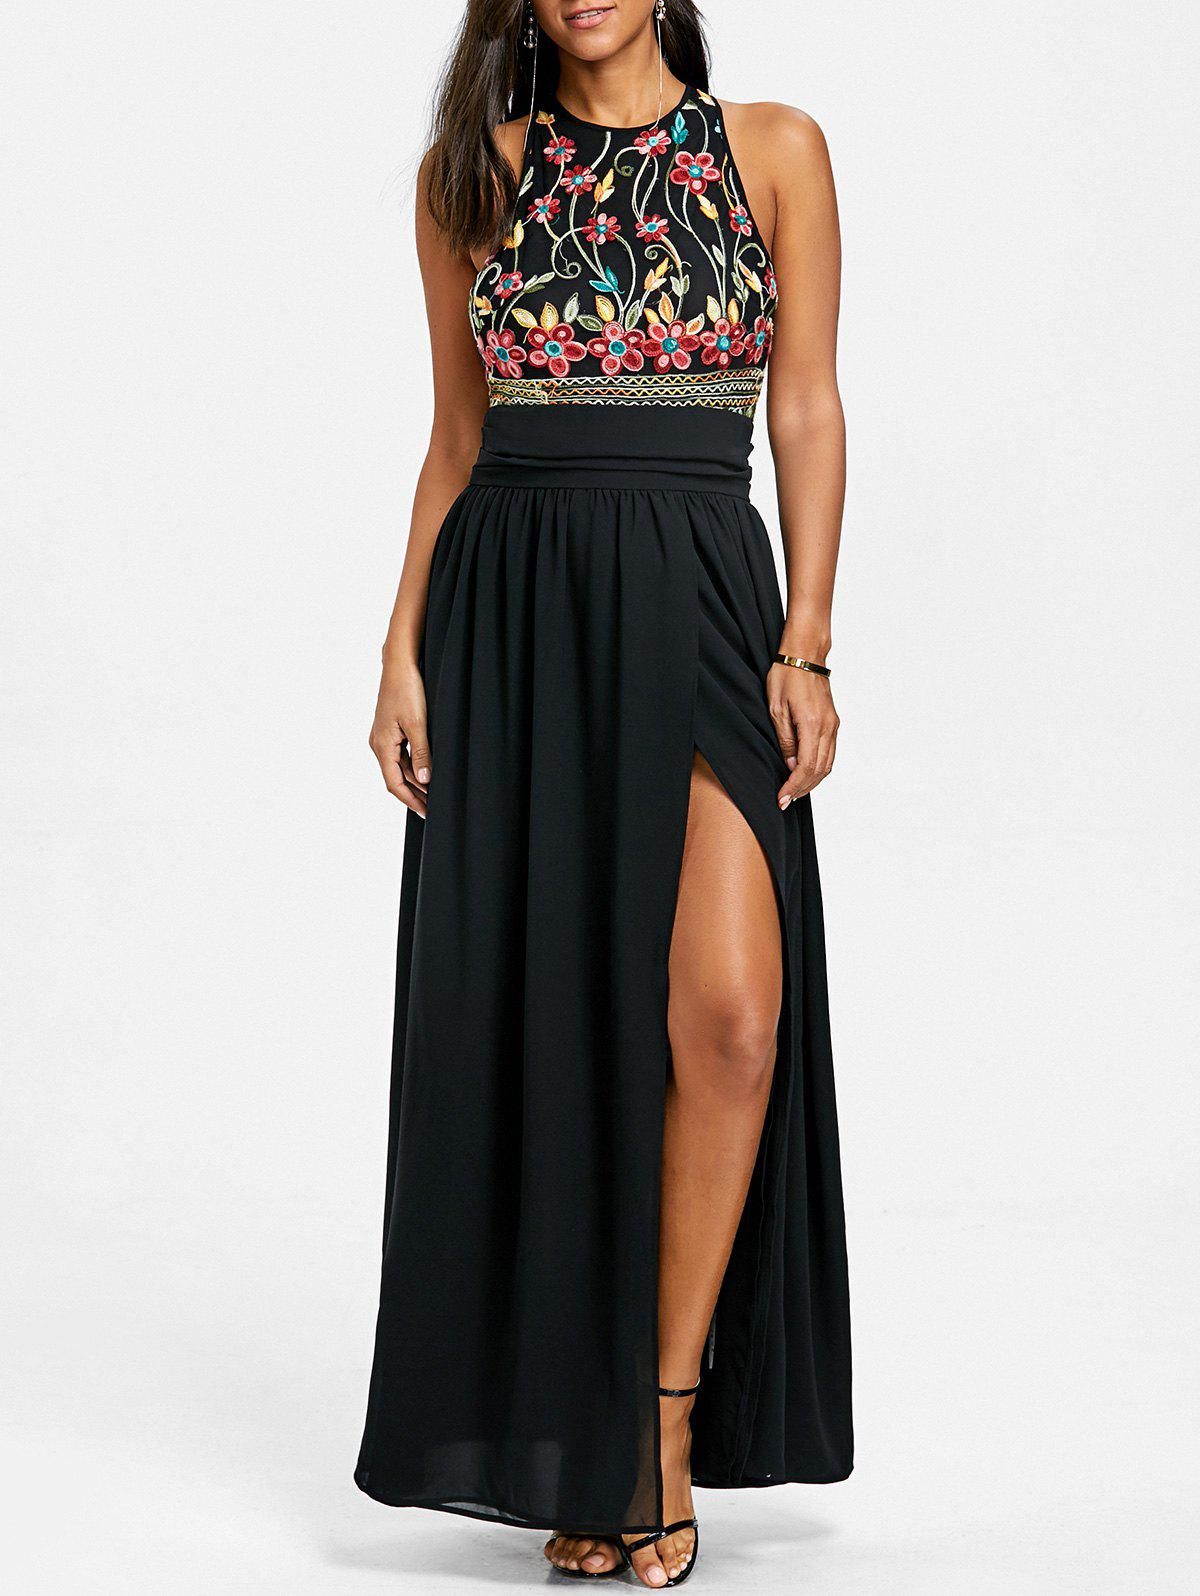 New Embroidery Maxi Evening Dress